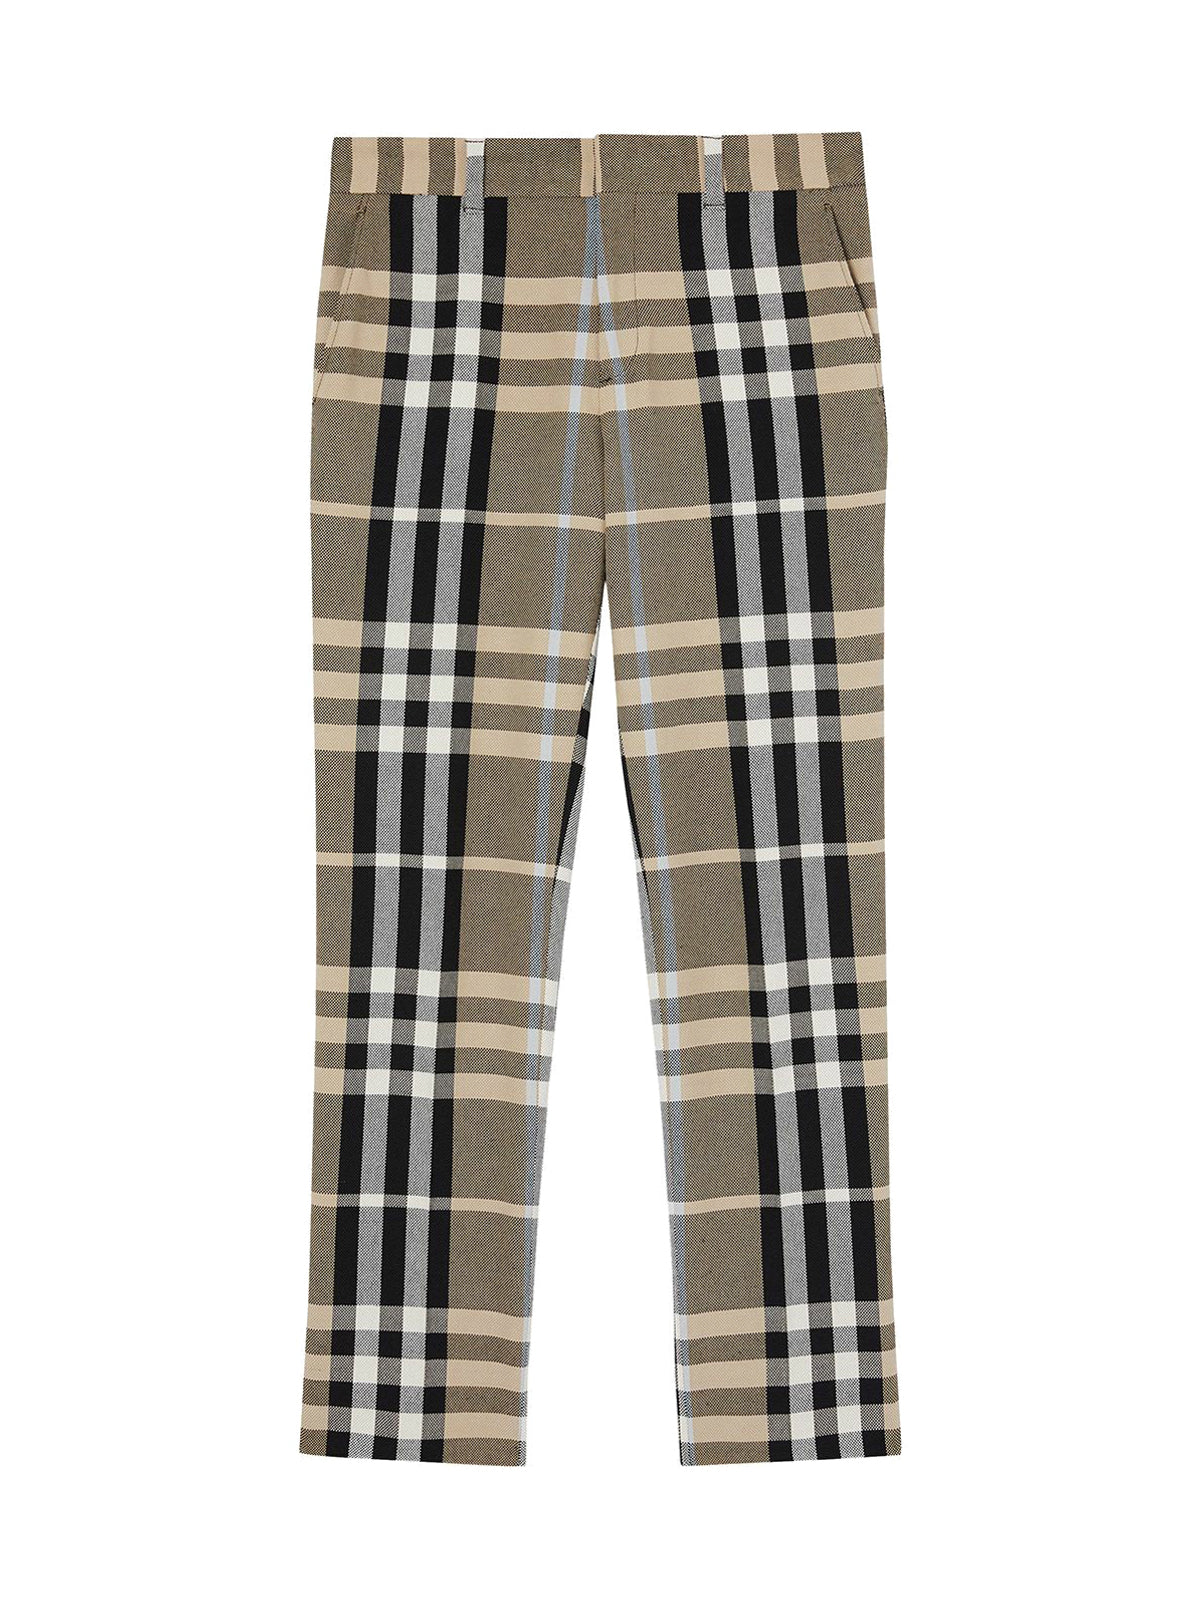 Tailoring trousers in technical cotton with tartan pattern